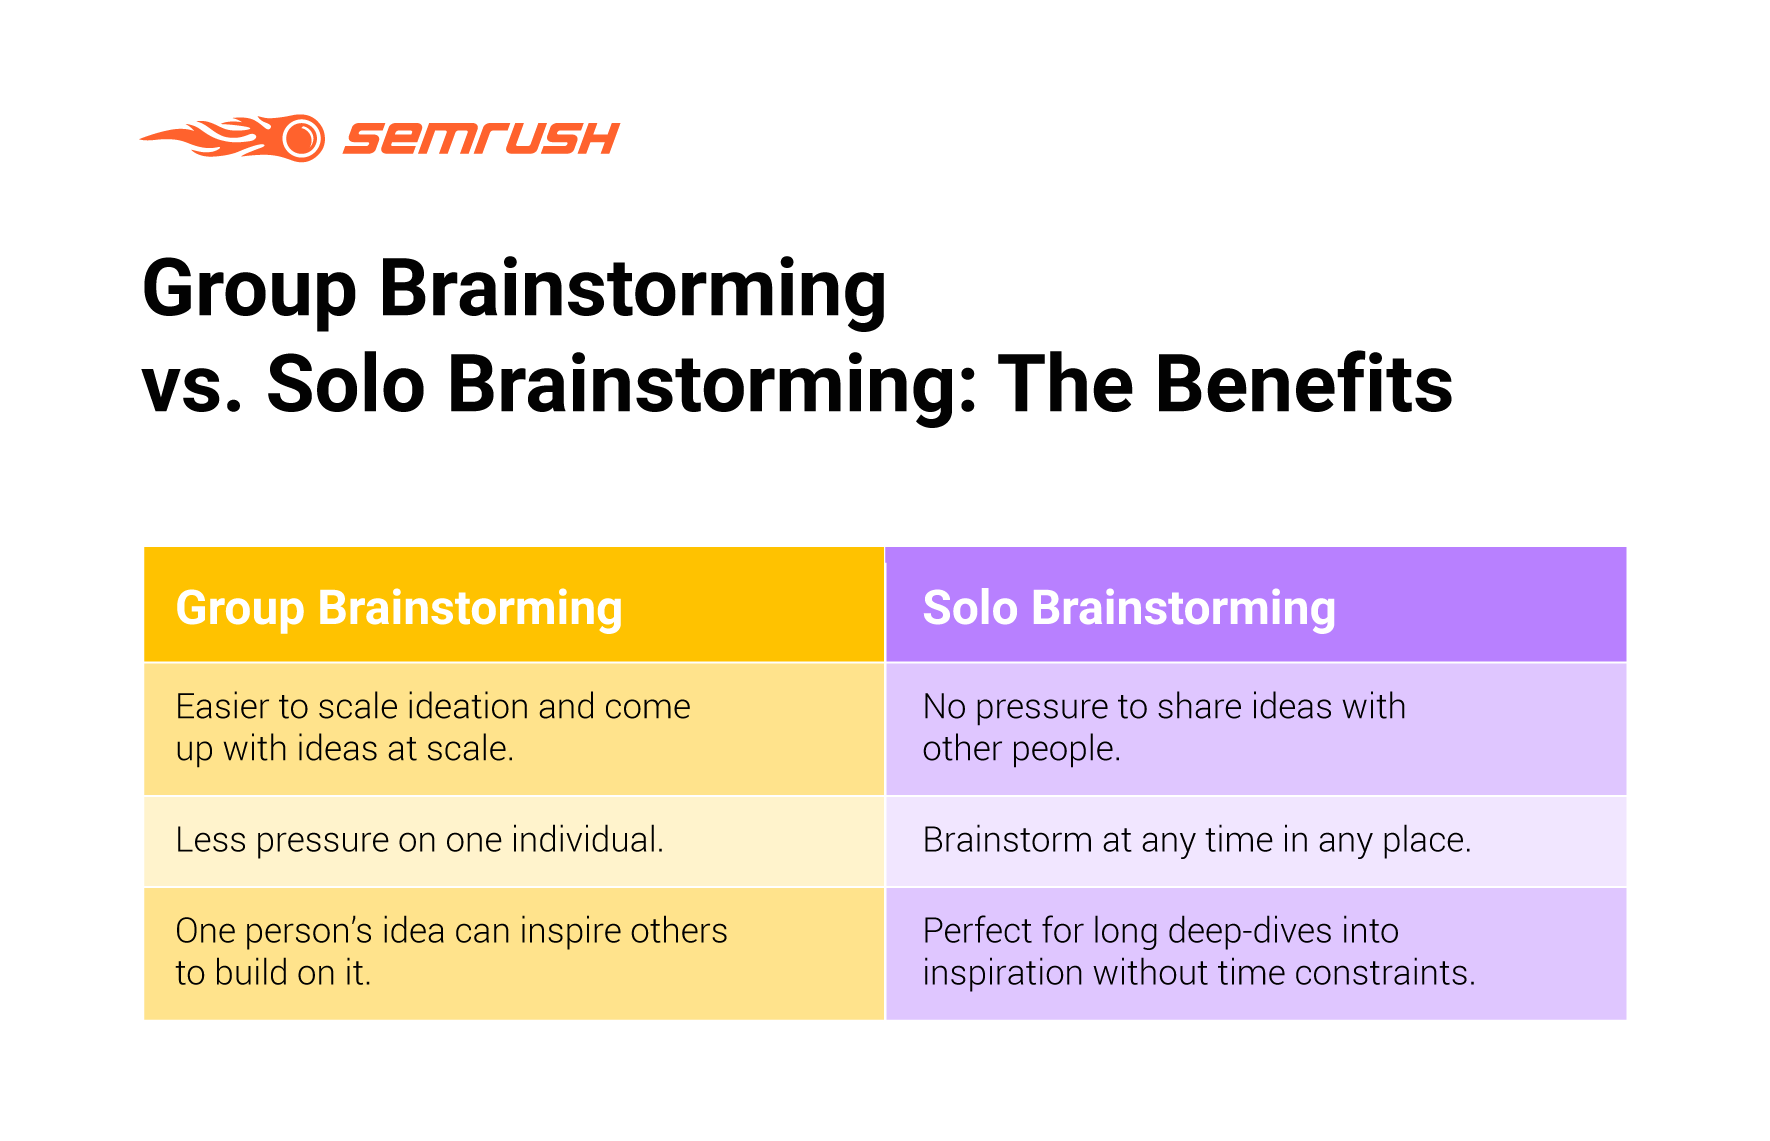 Benefits of Group and Solo Brainstorming